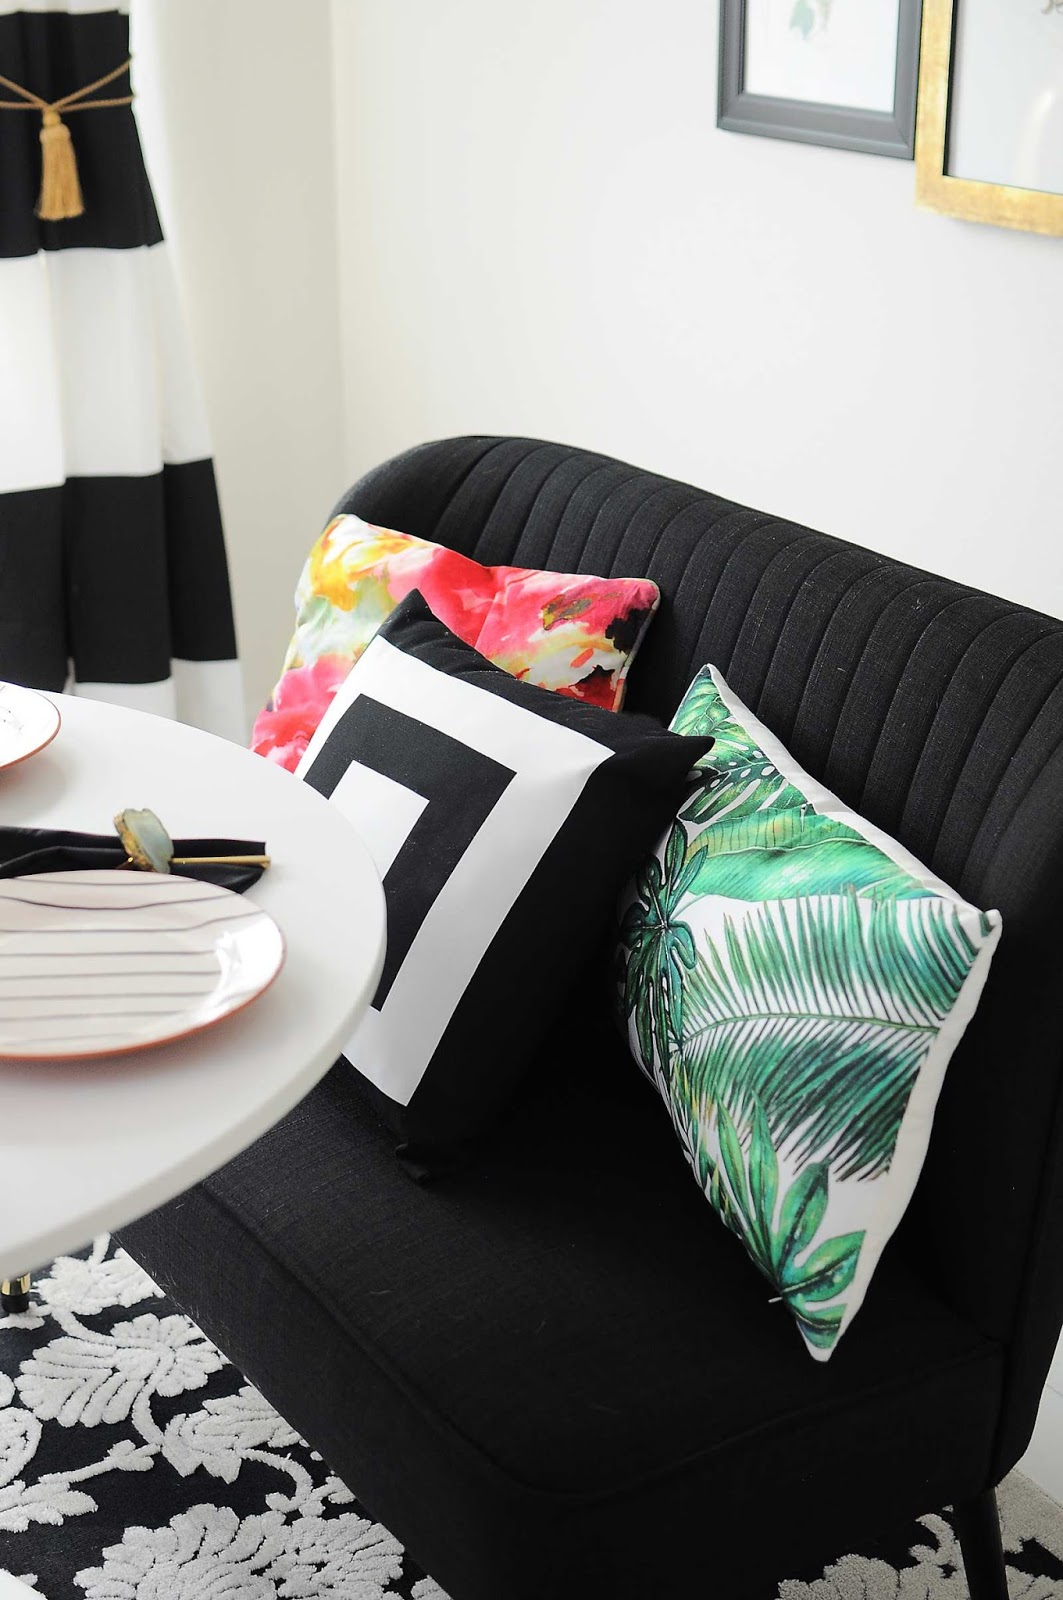 Colorful pillows add style and personality to a dining room bench.